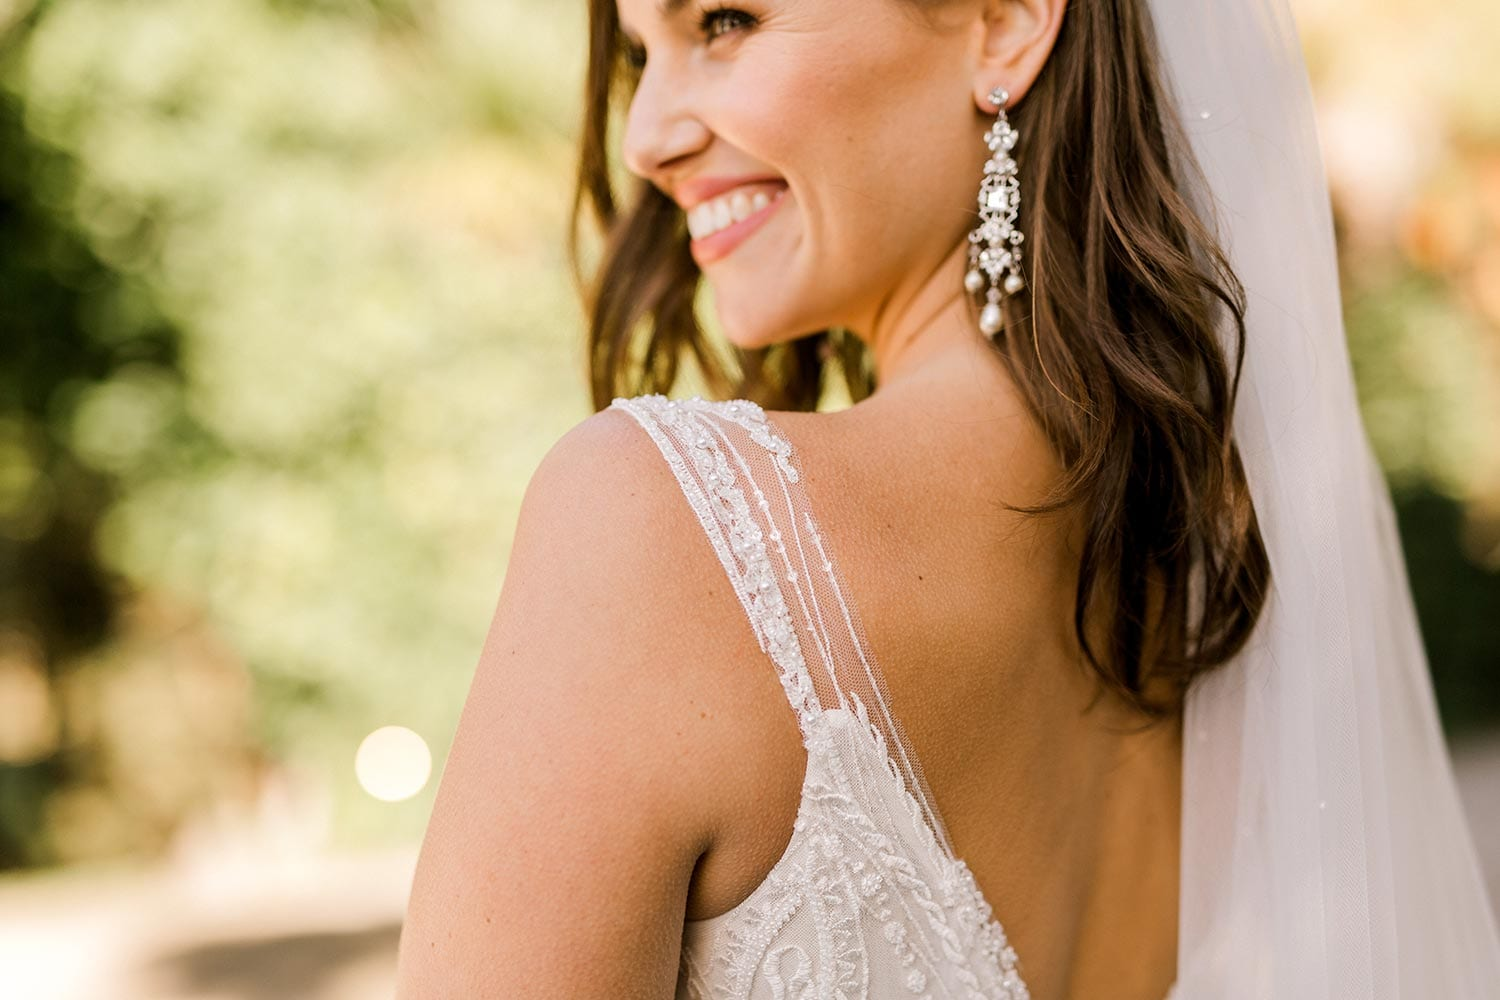 Kiera Wedding Dress from Vinka Design. Beautifully beaded lace wedding dress. Deep V-neckline both front and back is complemented with delicate sheer lace shoulder detail & structured bodice. Close up detail of shoulders. Photographed at Tui Hills.